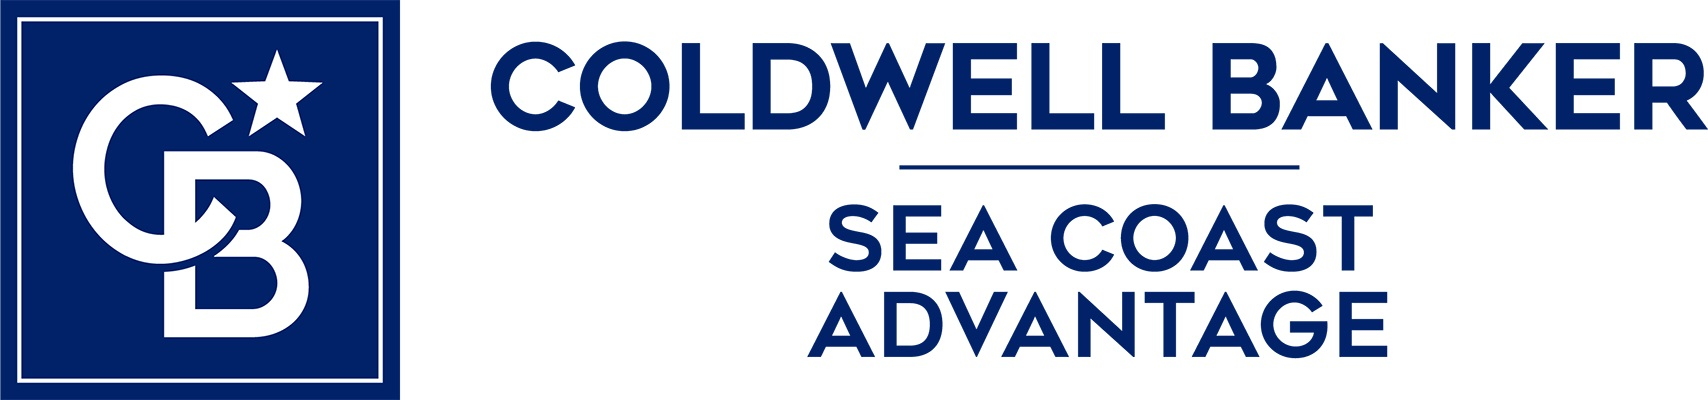 Johnny Buxani - Coldwell Banker Sea Coast Advantage Realty